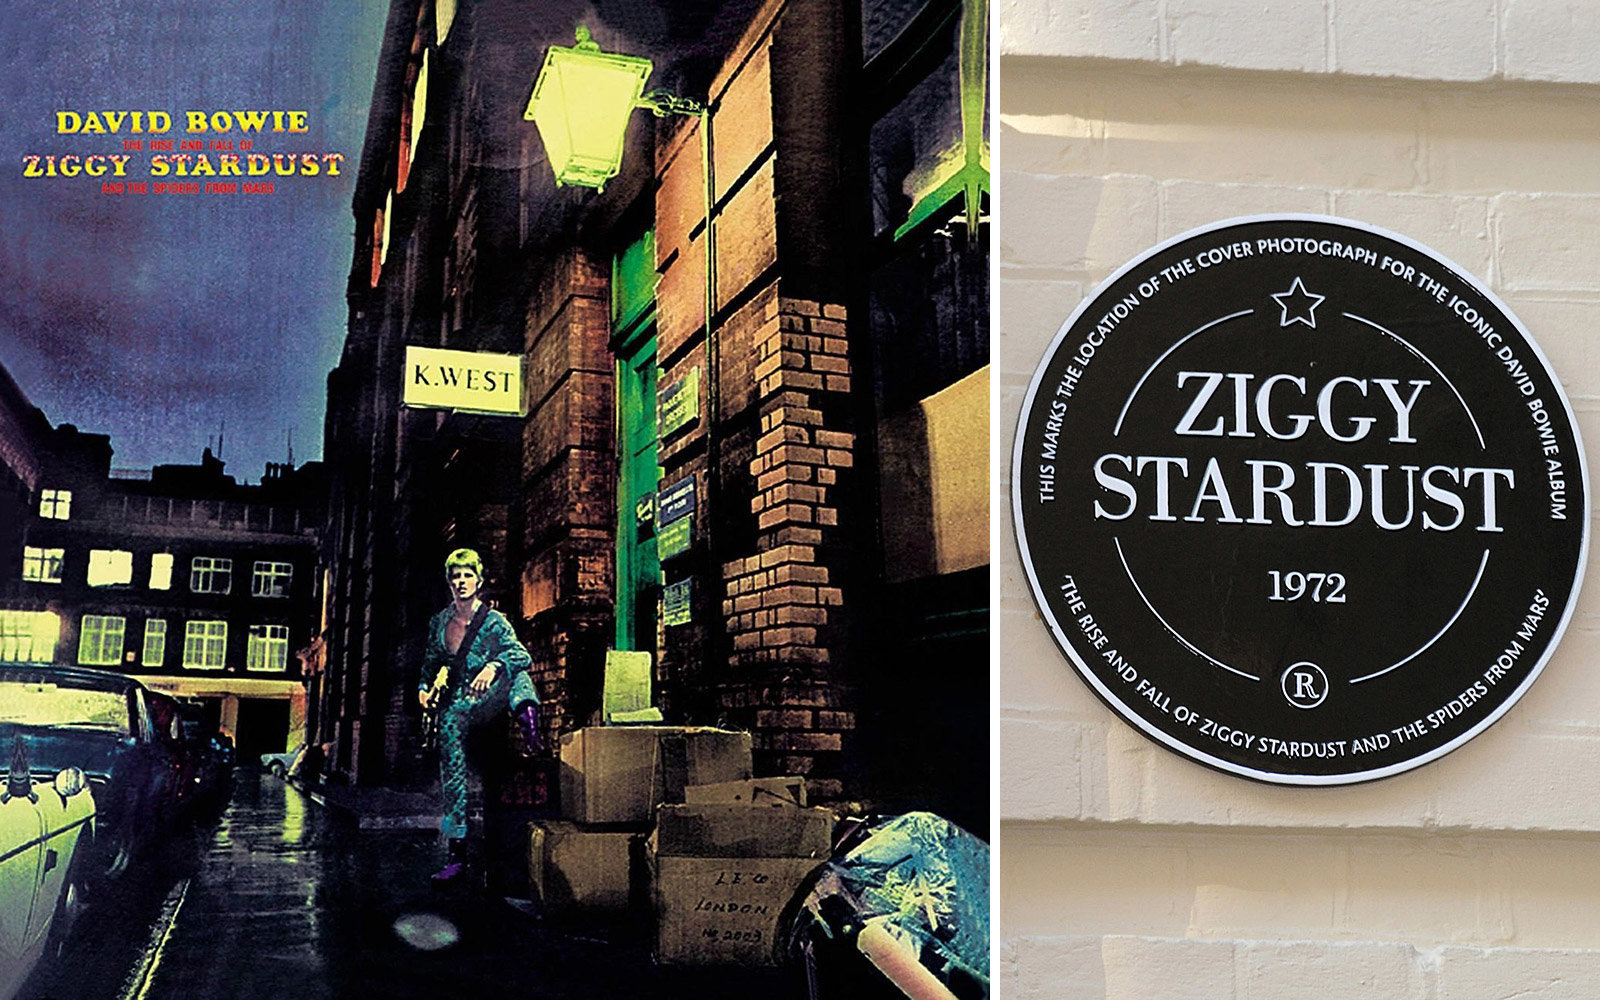 David Bowie travel guide to London and New York